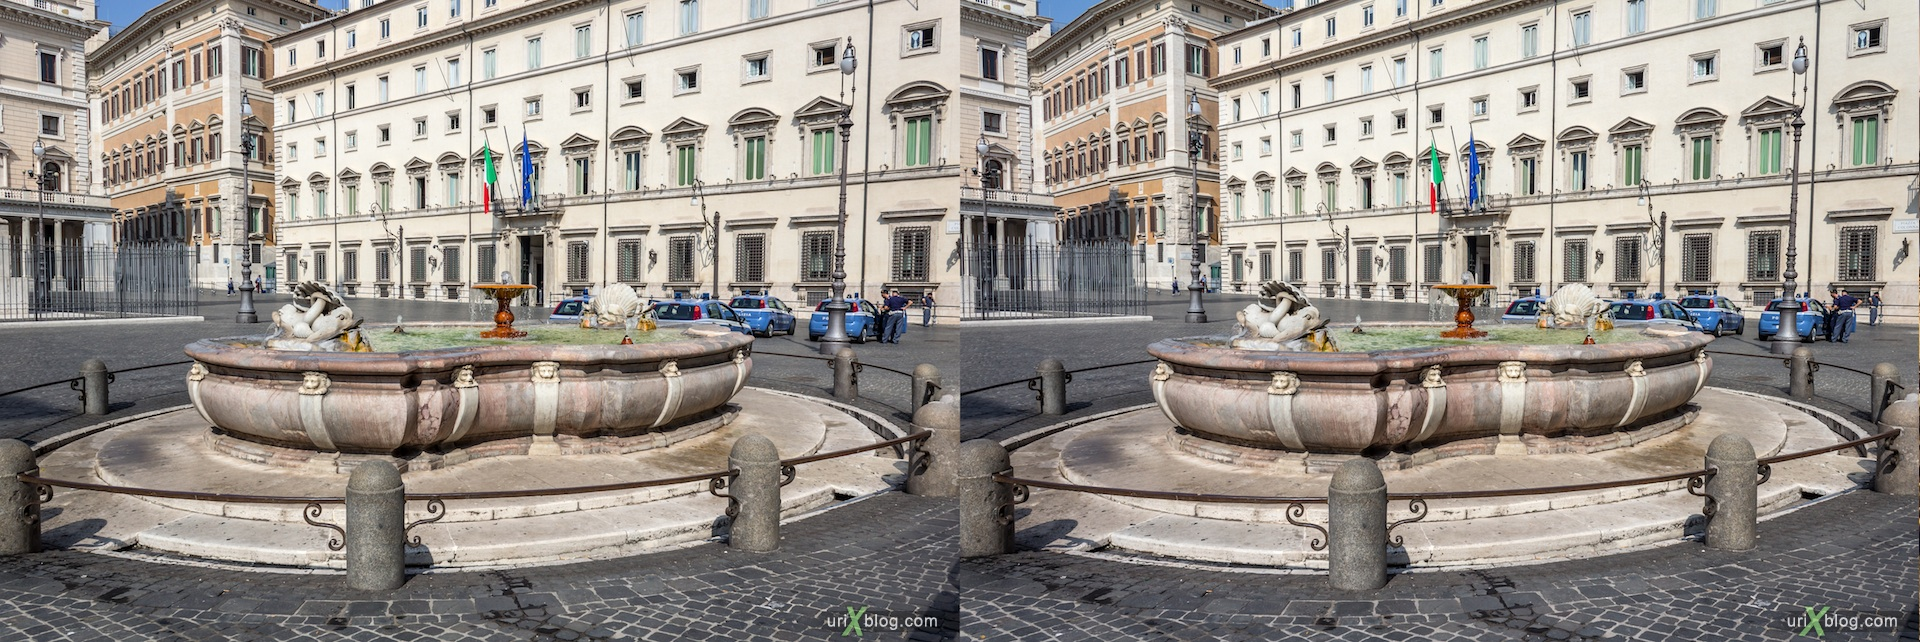 2012, fountain, Colonna square, Rome, Italy, 3D, stereo pair, cross-eyed, crossview, cross view stereo pair